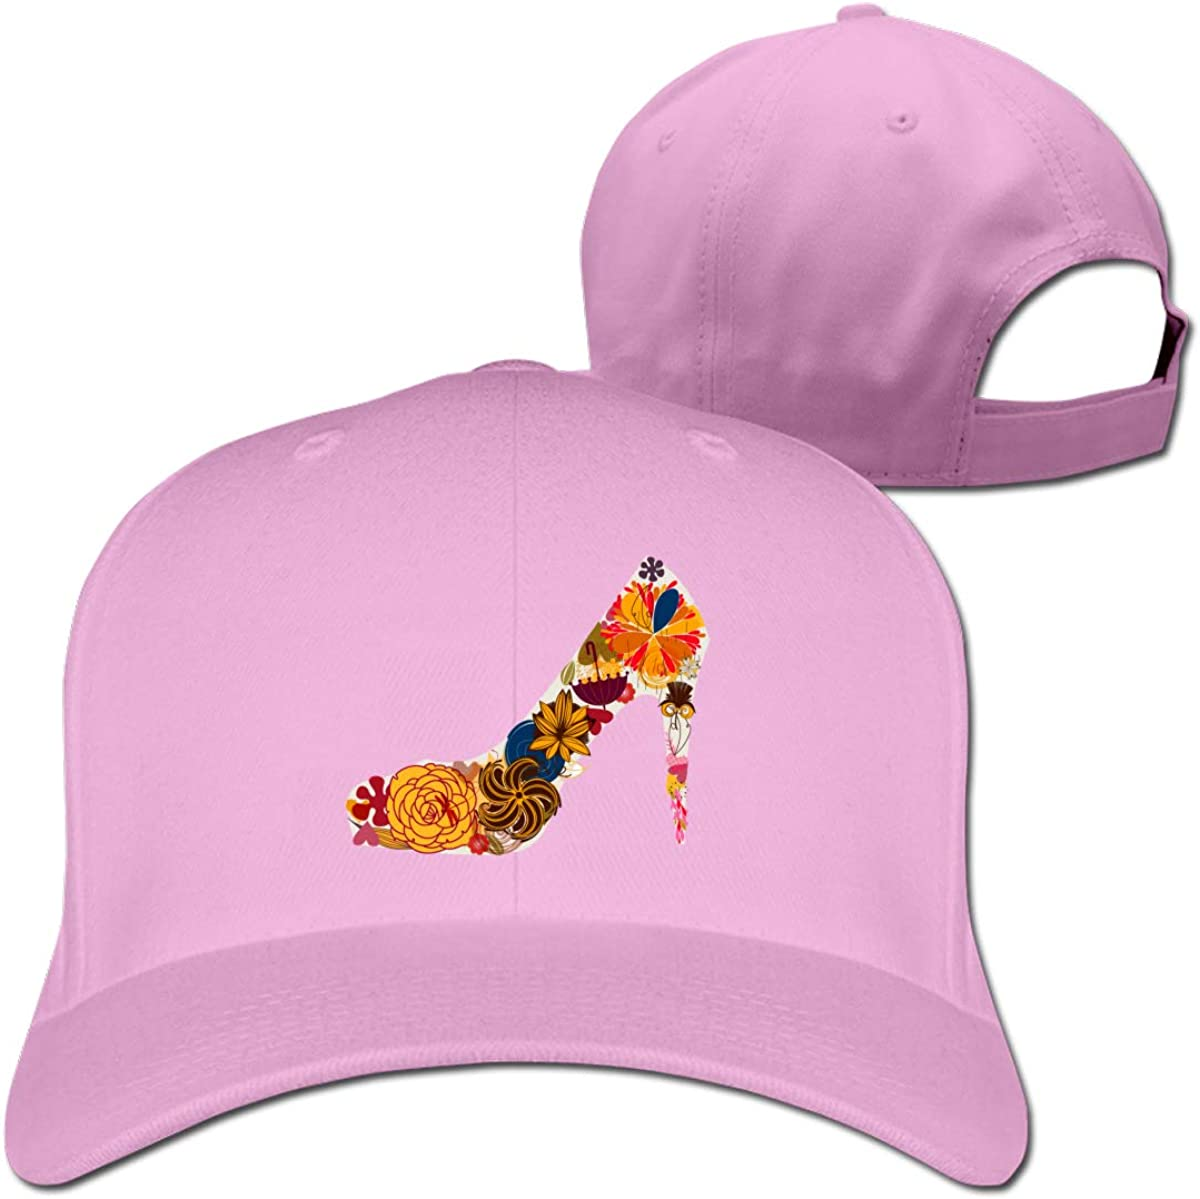 Butterfly High Heel Classic Adjustable Cotton Baseball Caps Trucker Driver Hat Outdoor Cap Fitted Hats Dad Hat Pink